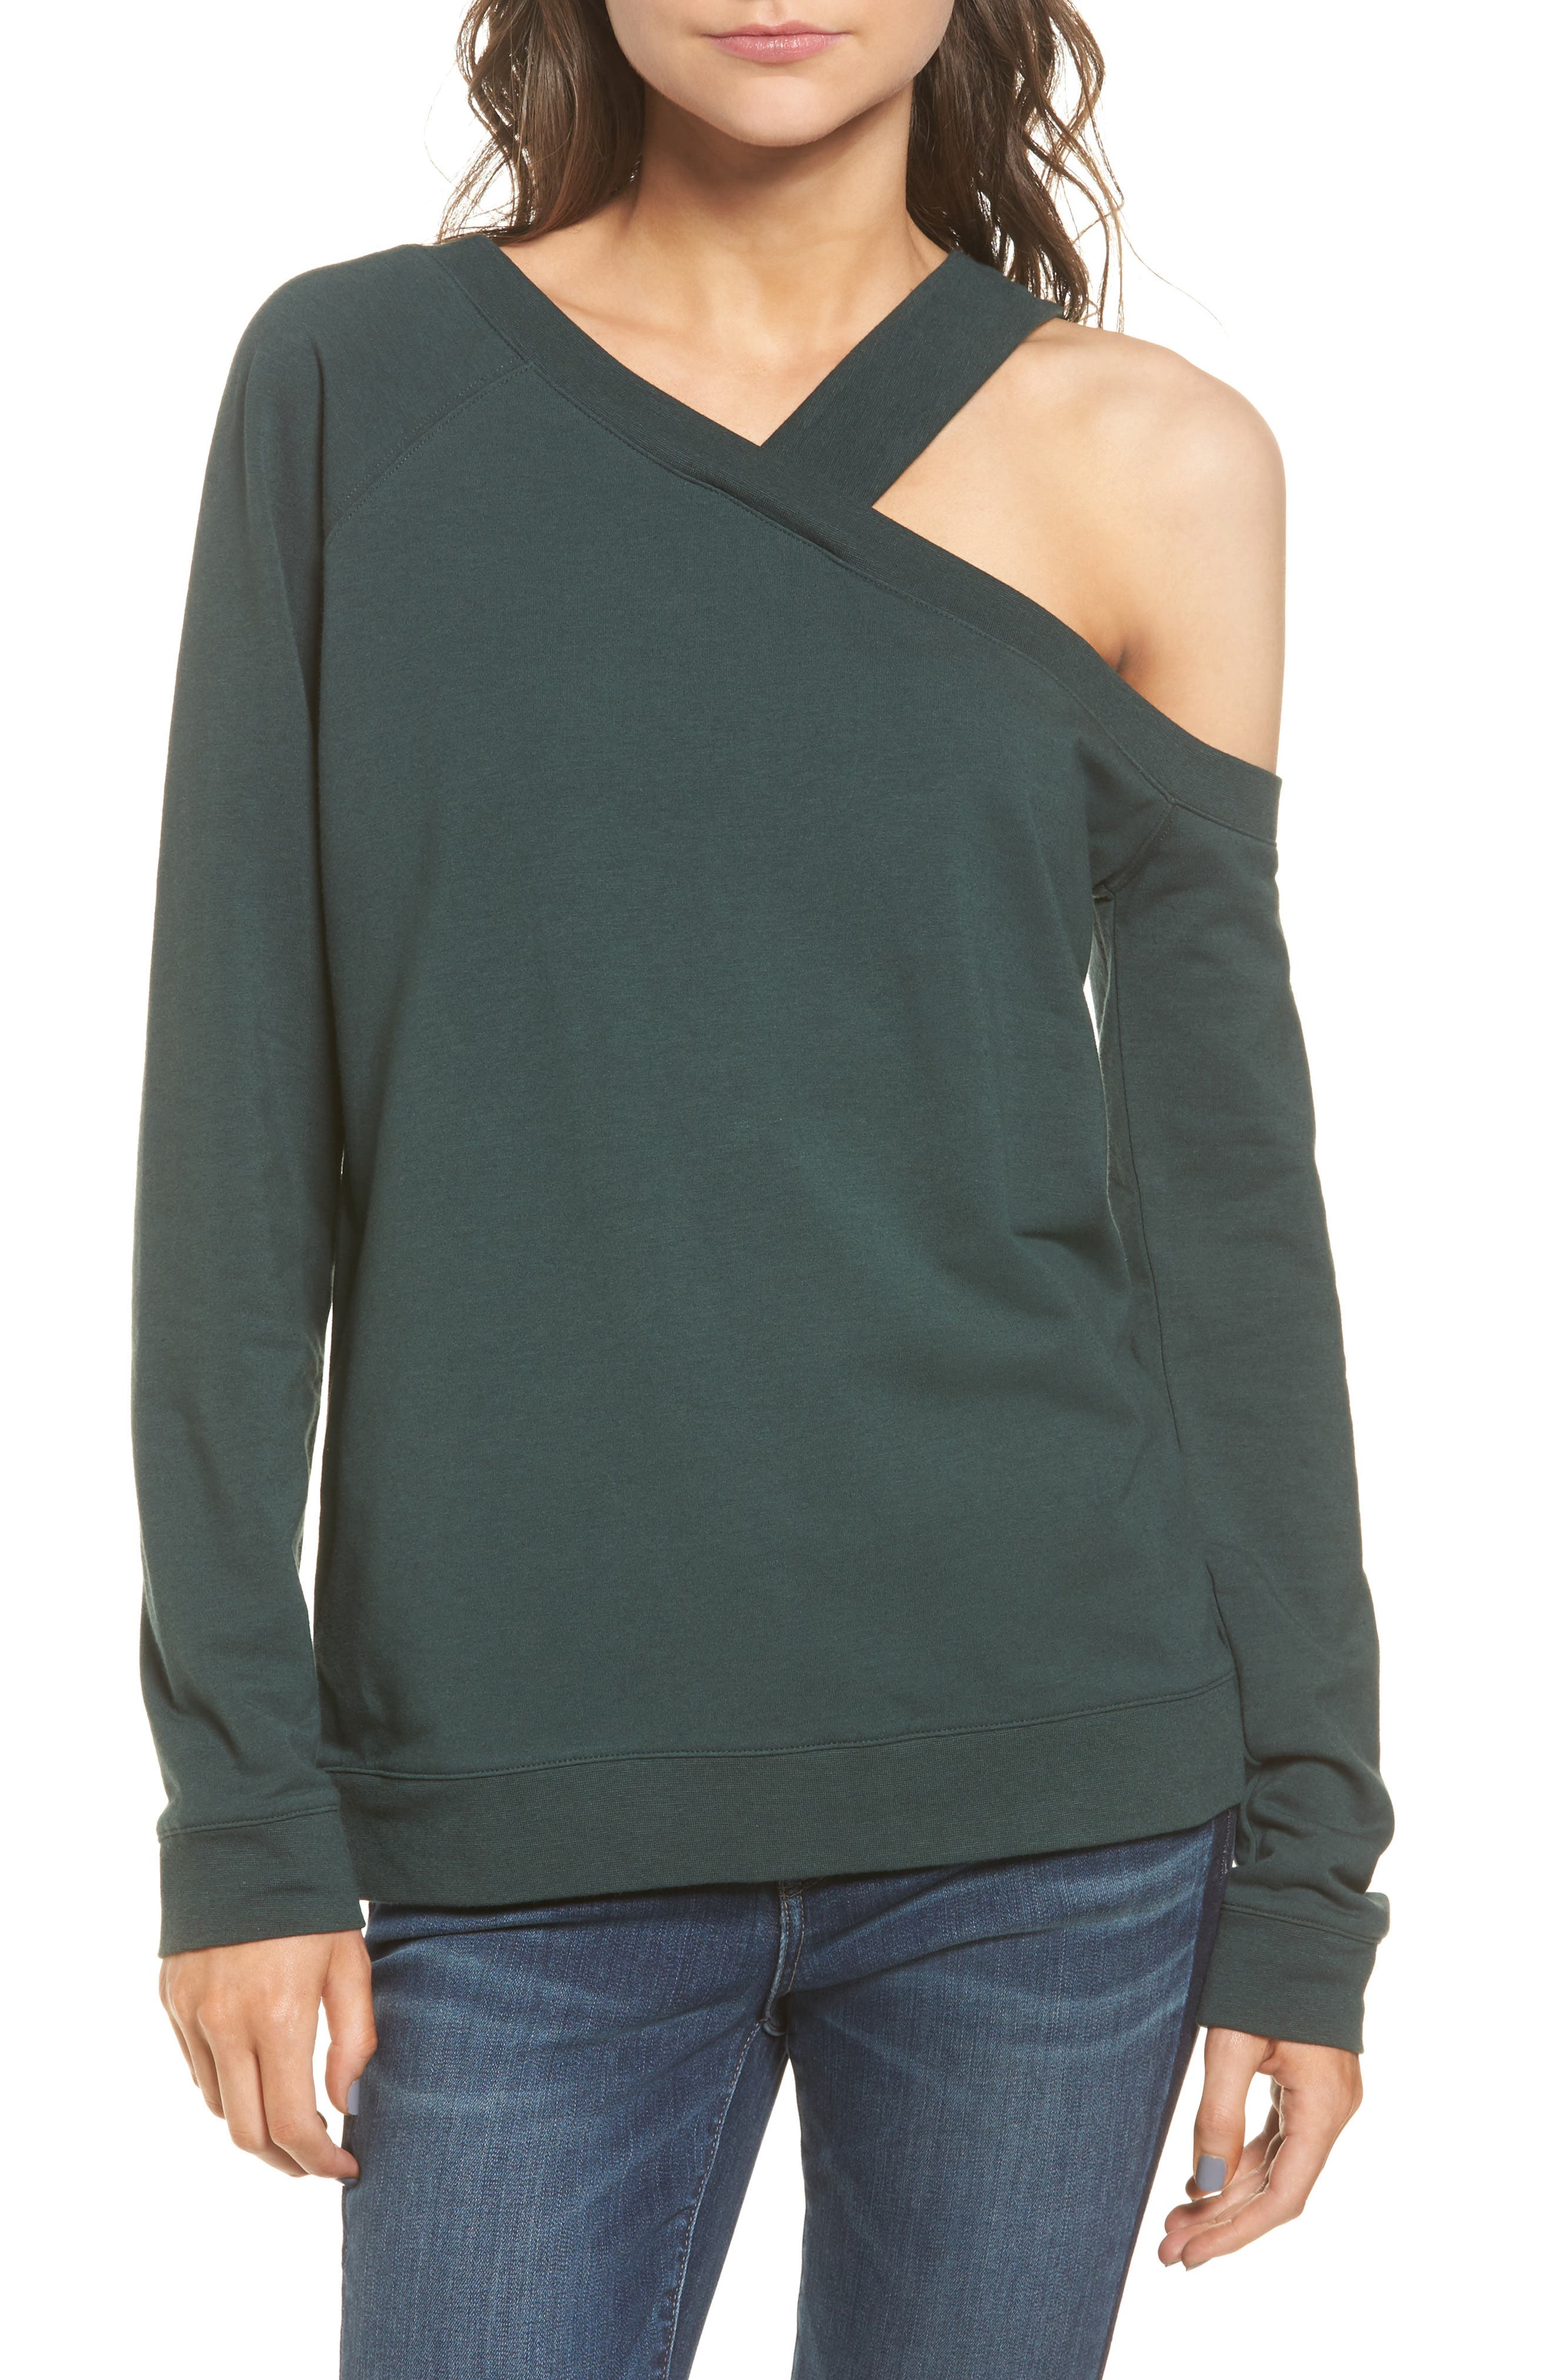 Treasure & Bond Asymmetrical Sweatshirt